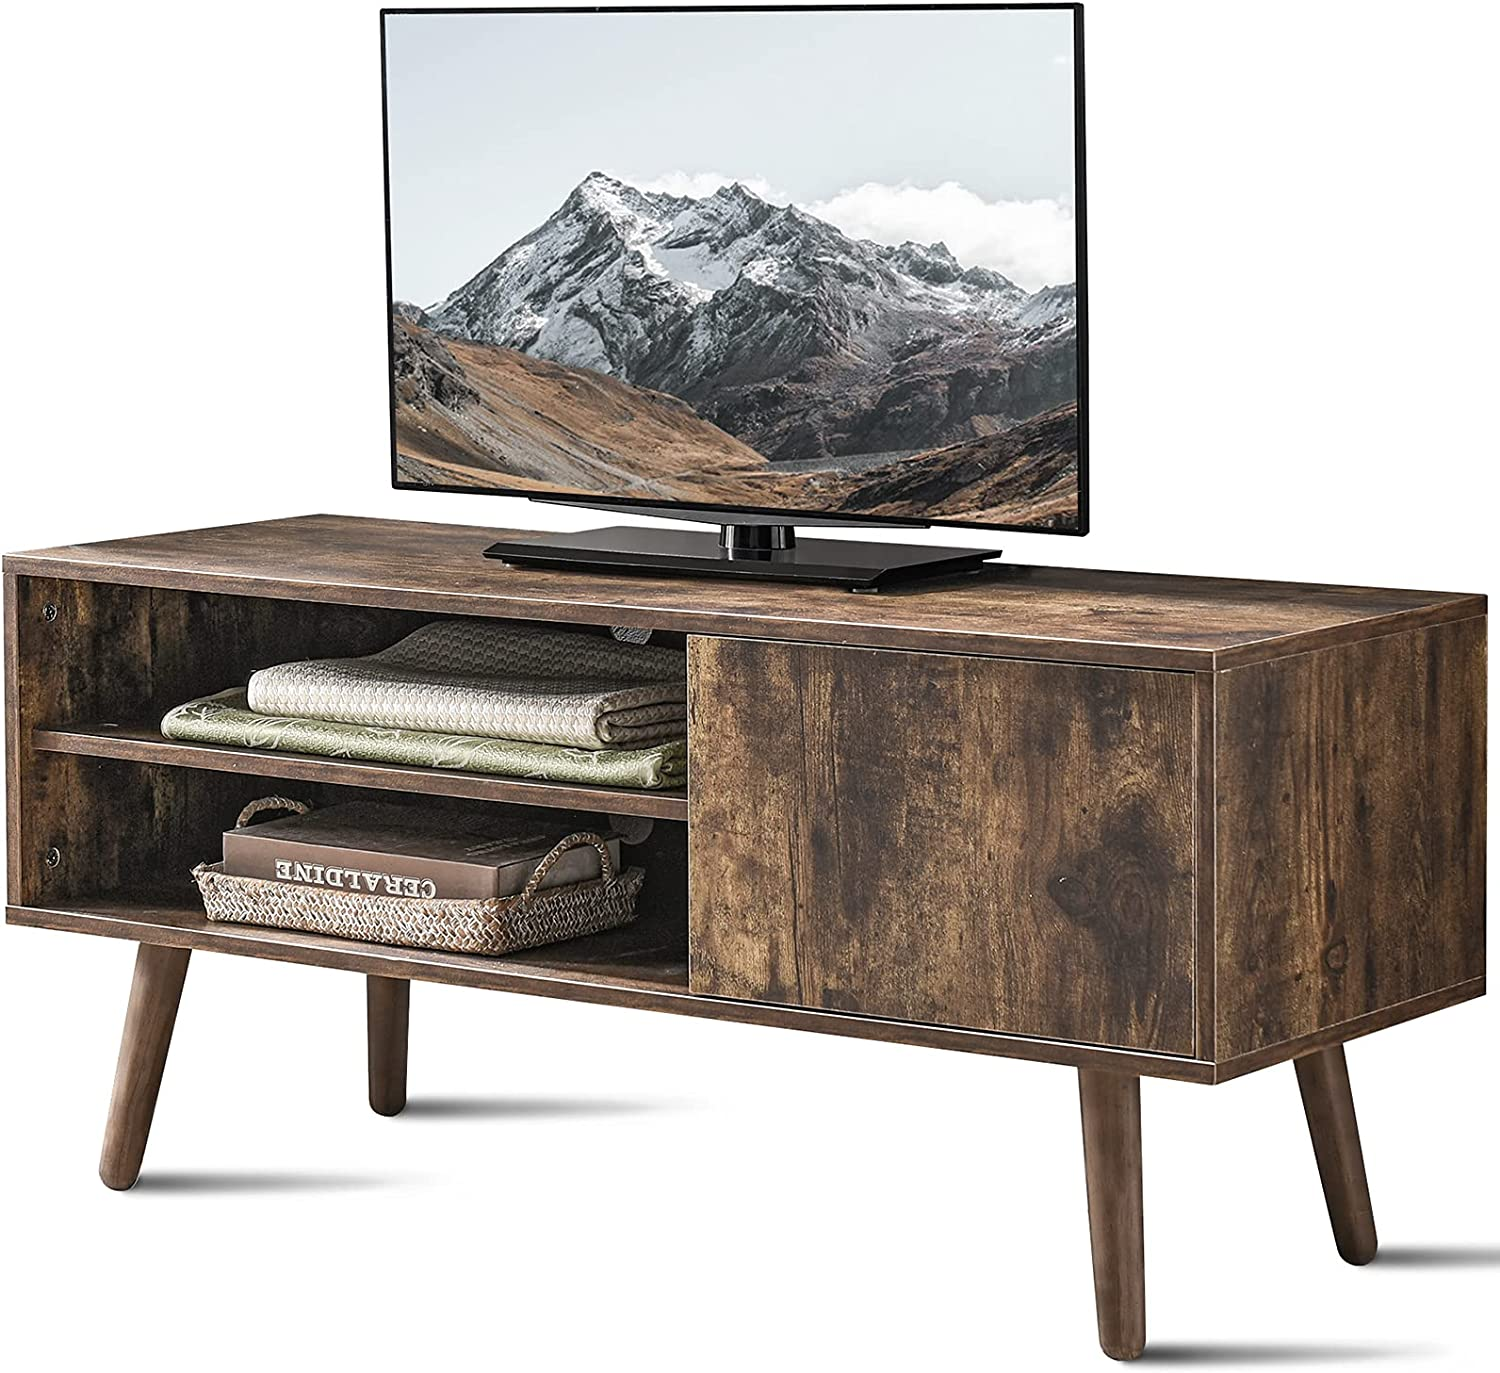 Cozy ご予約品 Castle TV Stand for 50 スーパーセール Century Inch Mid Modern Conso